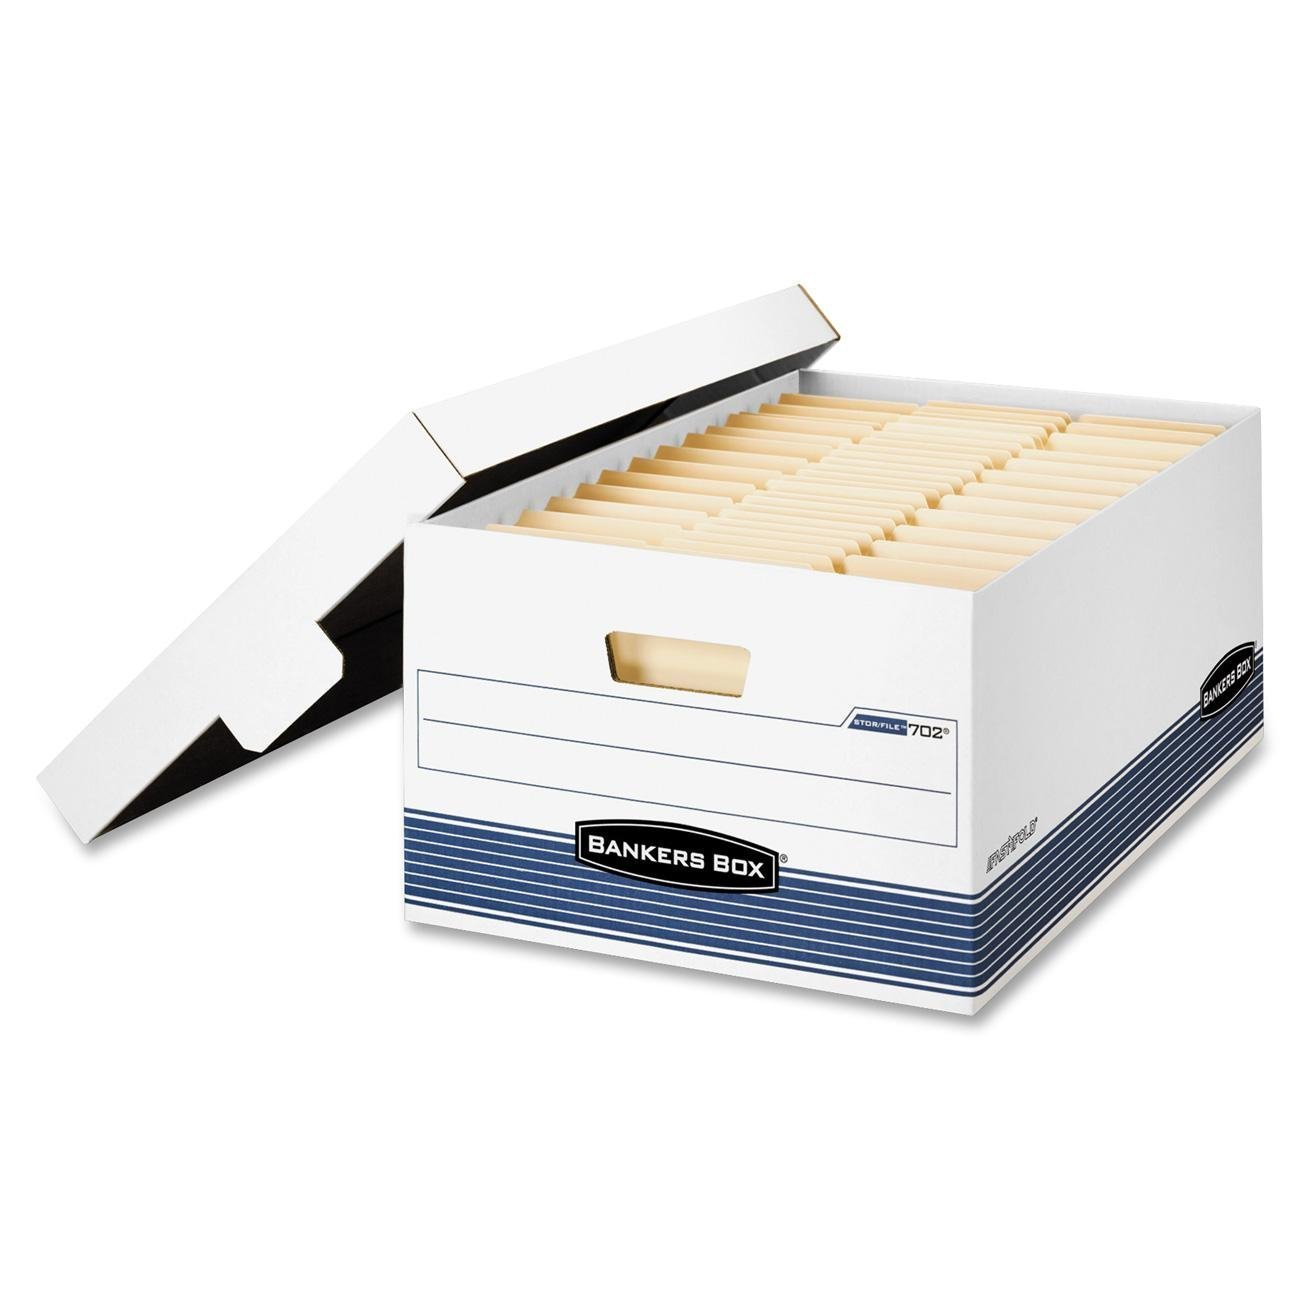 Bankers Box Stor/File Medium-Duty Storage Boxes with Lift-Off Lid, Legal, 12 Pack (00702) (24 PACK)